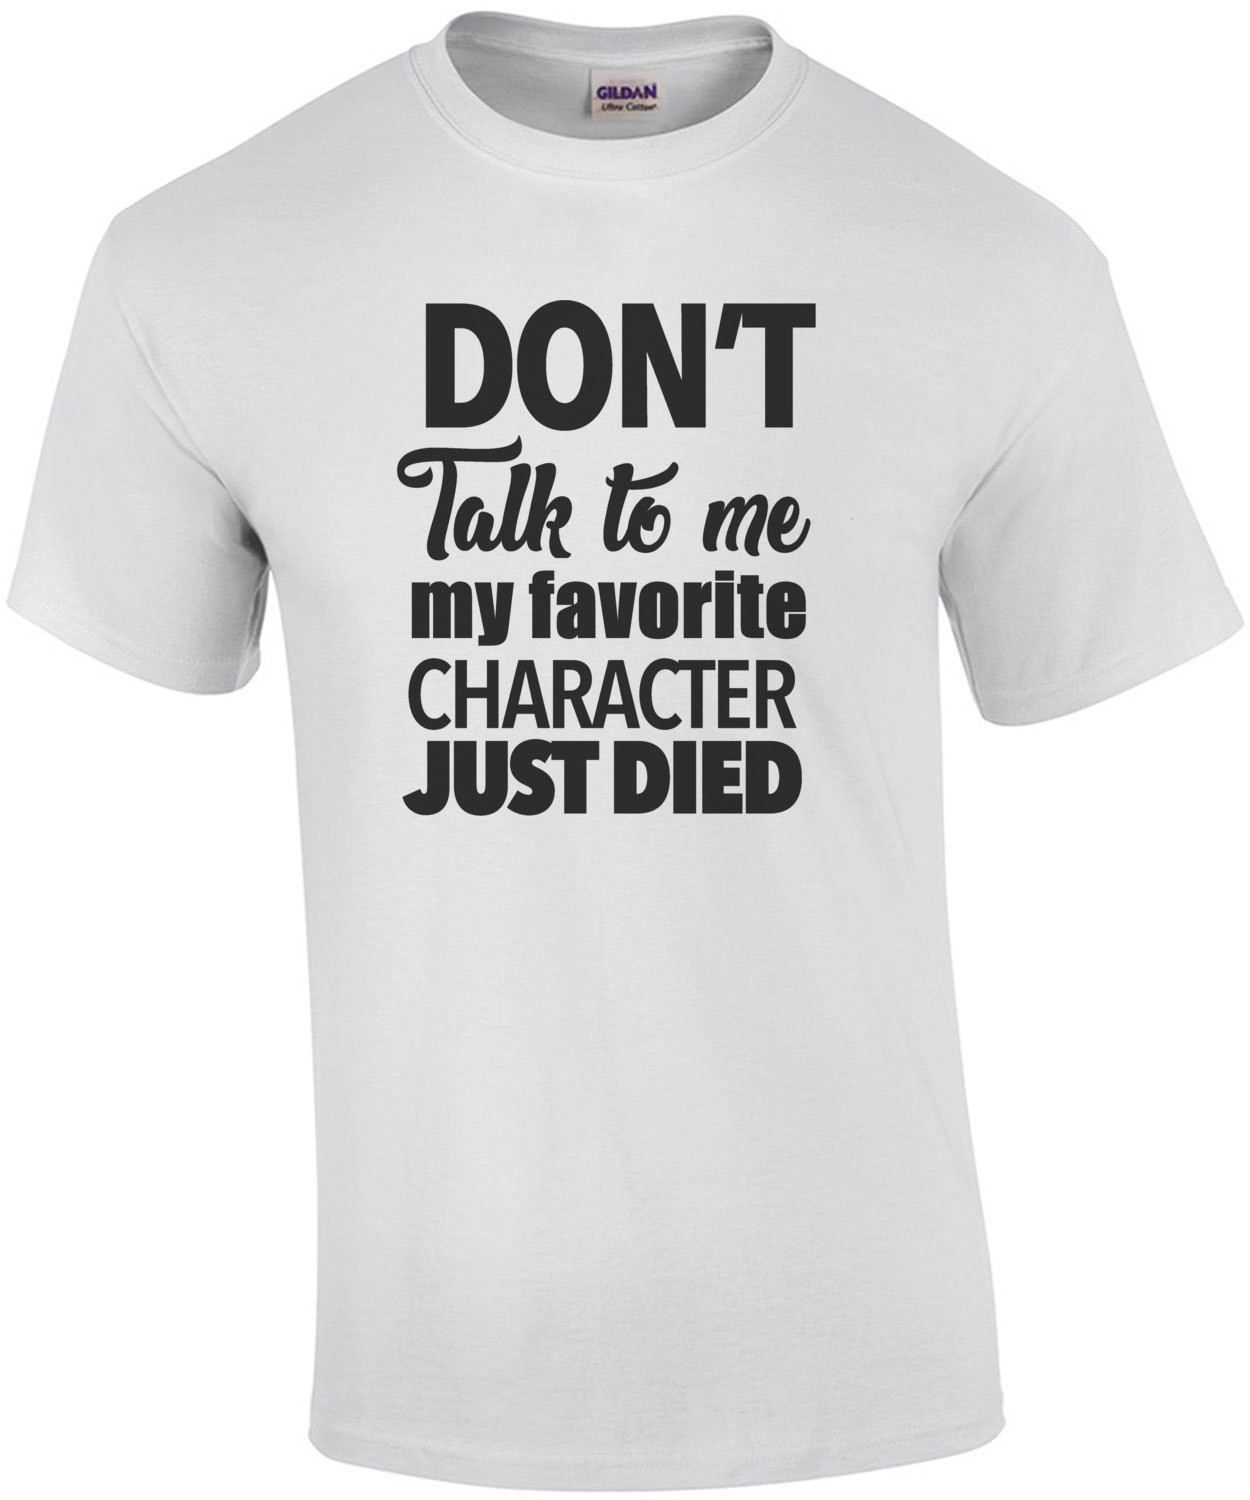 Don't talk to me my favorite character just died - funny tshirt